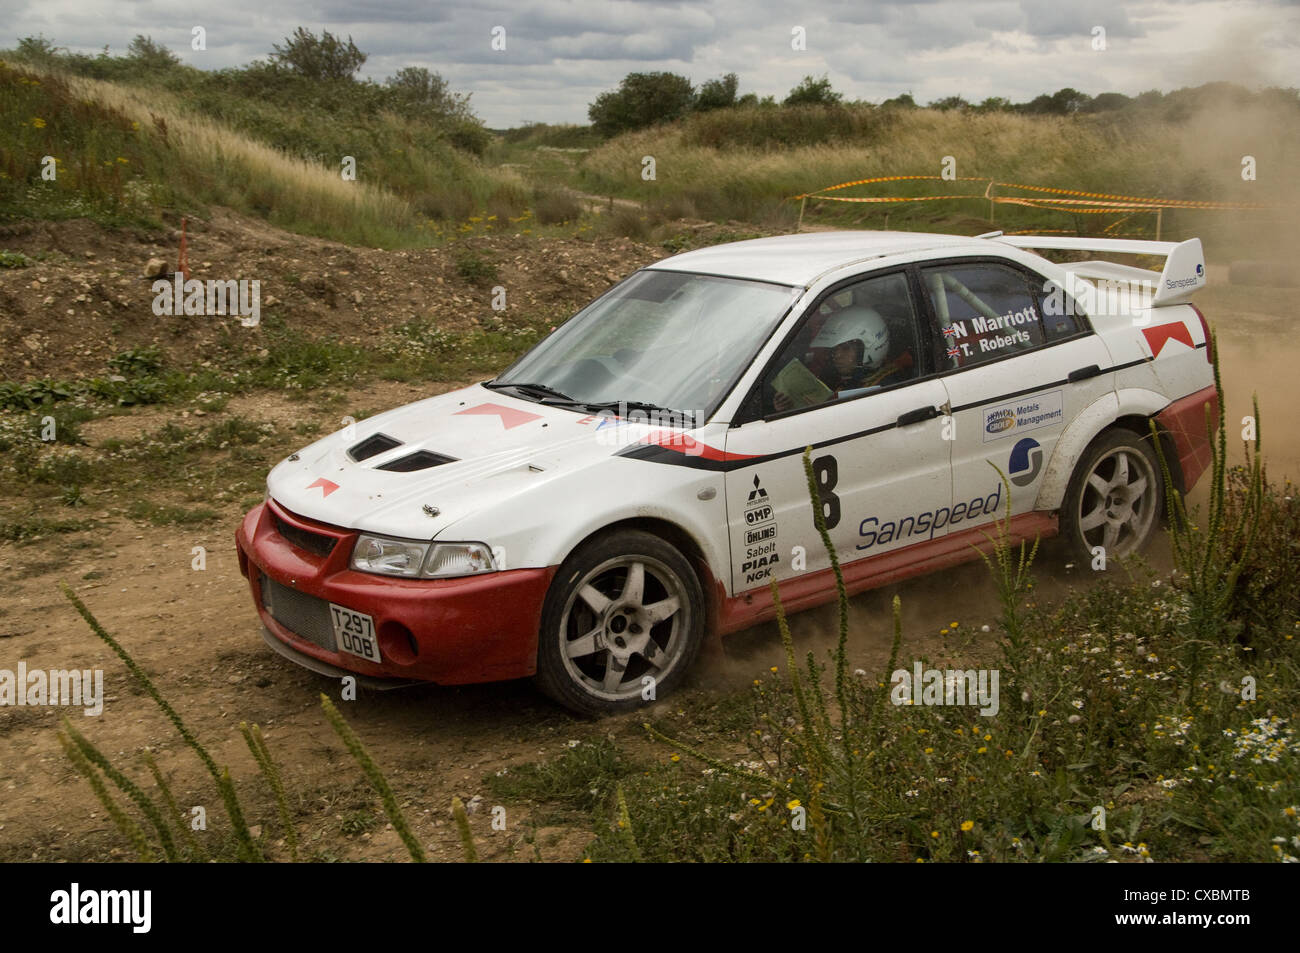 MItsubishi Lancer rally car Stock Photo: 50659627 - Alamy